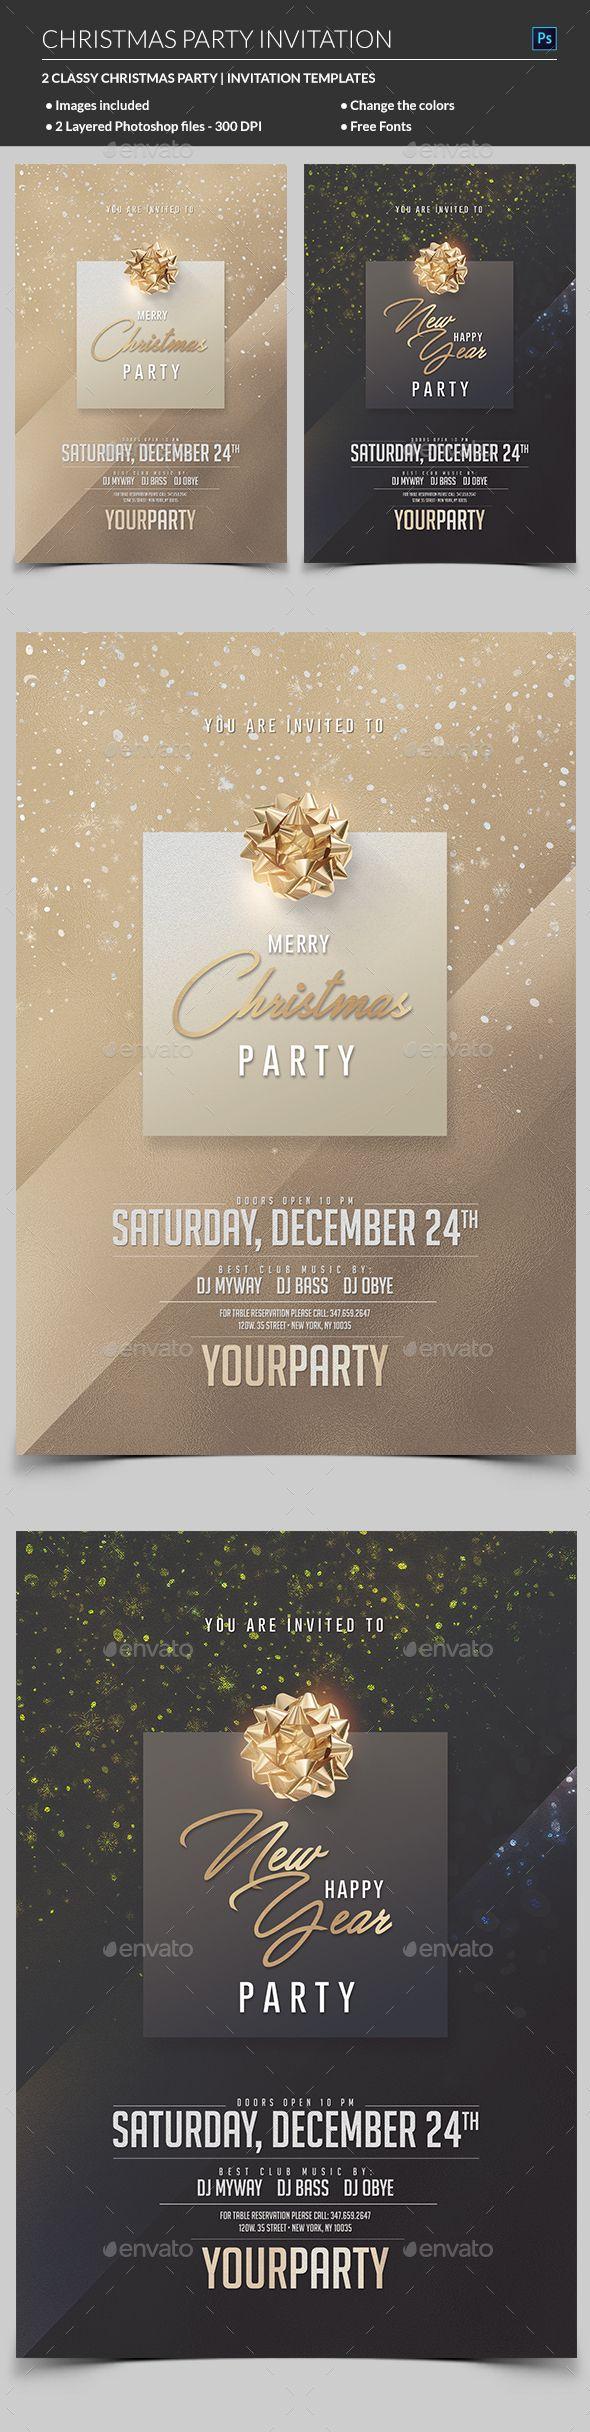 best images about christmas flyer templates christmas party invitation invitation holidaysinvitation flyerchristmas flyer templatesitem